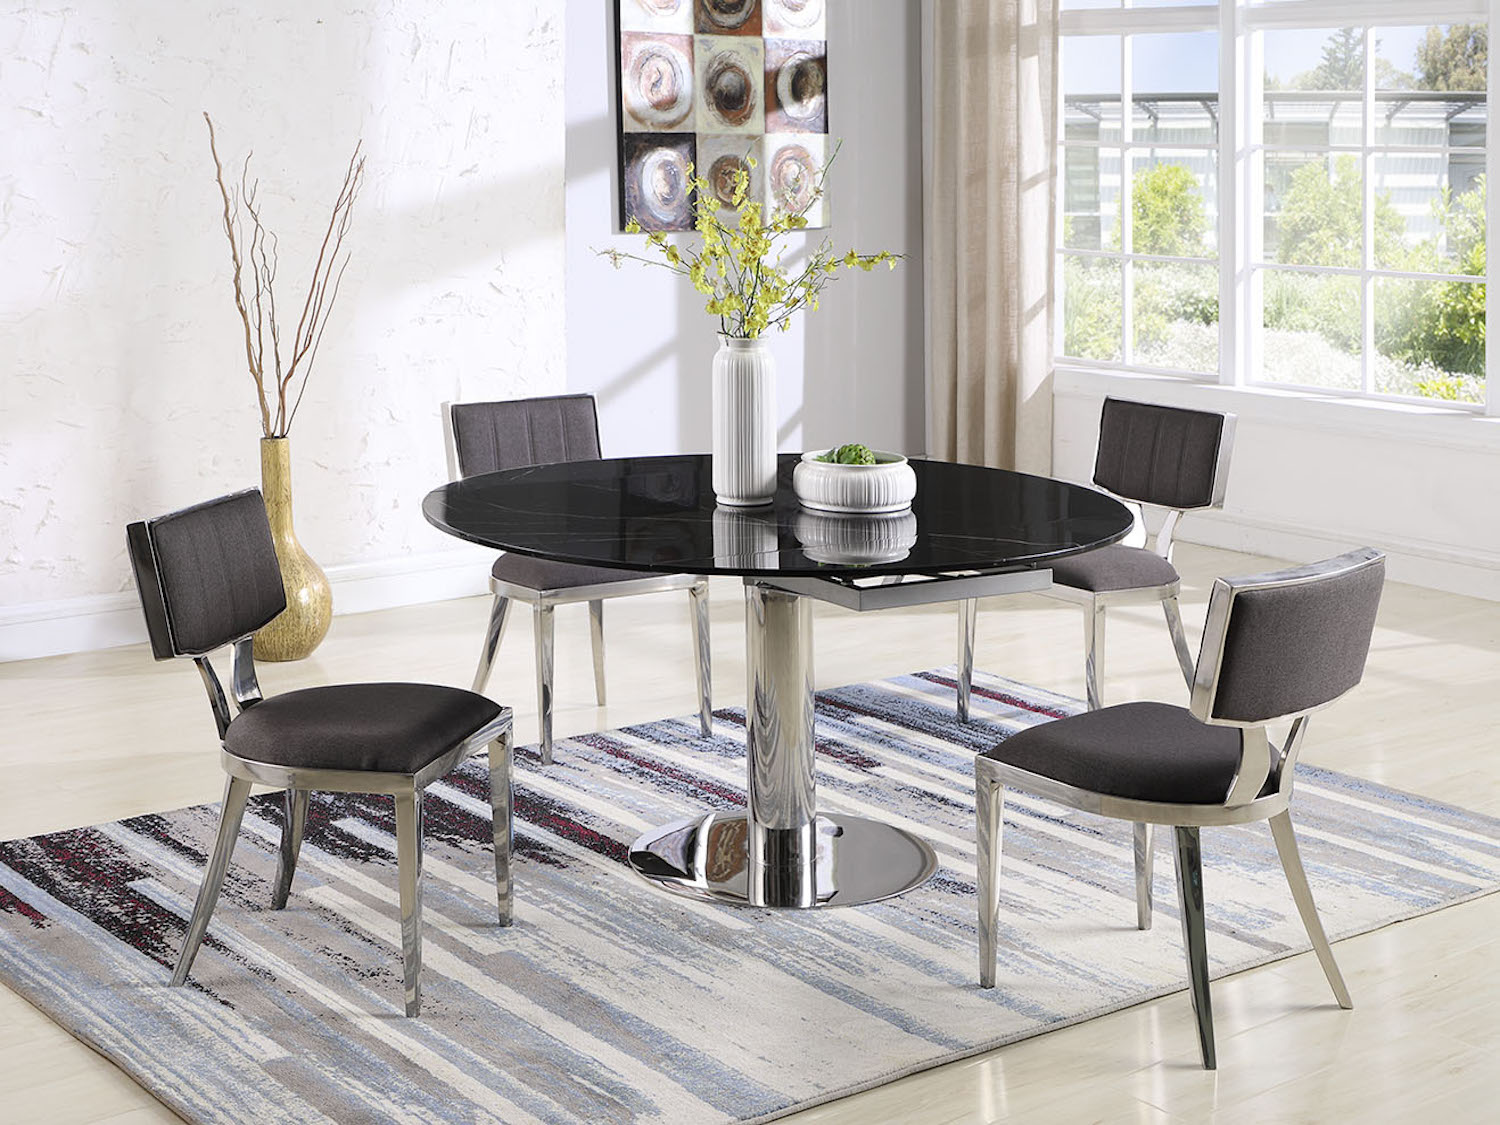 Bailey Dining Set, Bailey, Premium Dining Room Collection by Midha Furniture to Brampton, Mississauga, Etobicoke, Toronto, Scraborough, Caledon, Oakville, Markham, Ajax, Pickering, Oshawa, Richmondhill, Kitchener, Hamilton and GTA area